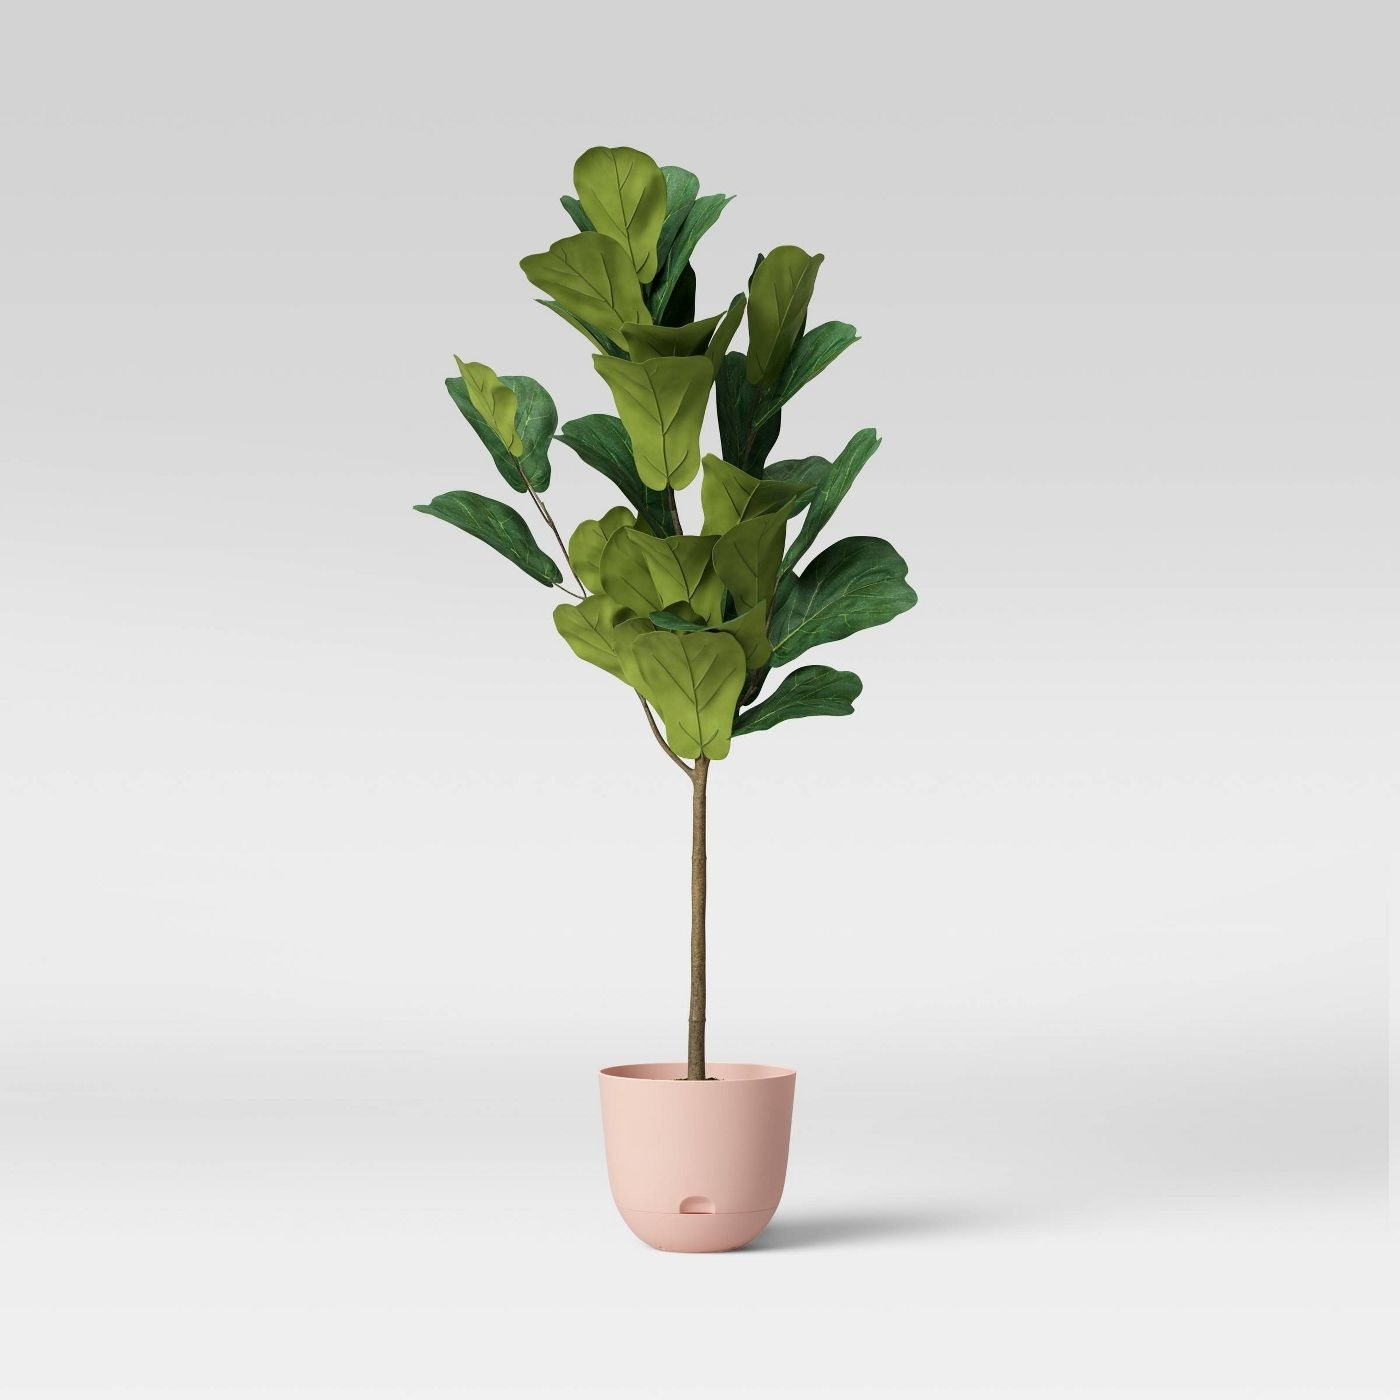 peach blush self-watering planter with green-leafed plant